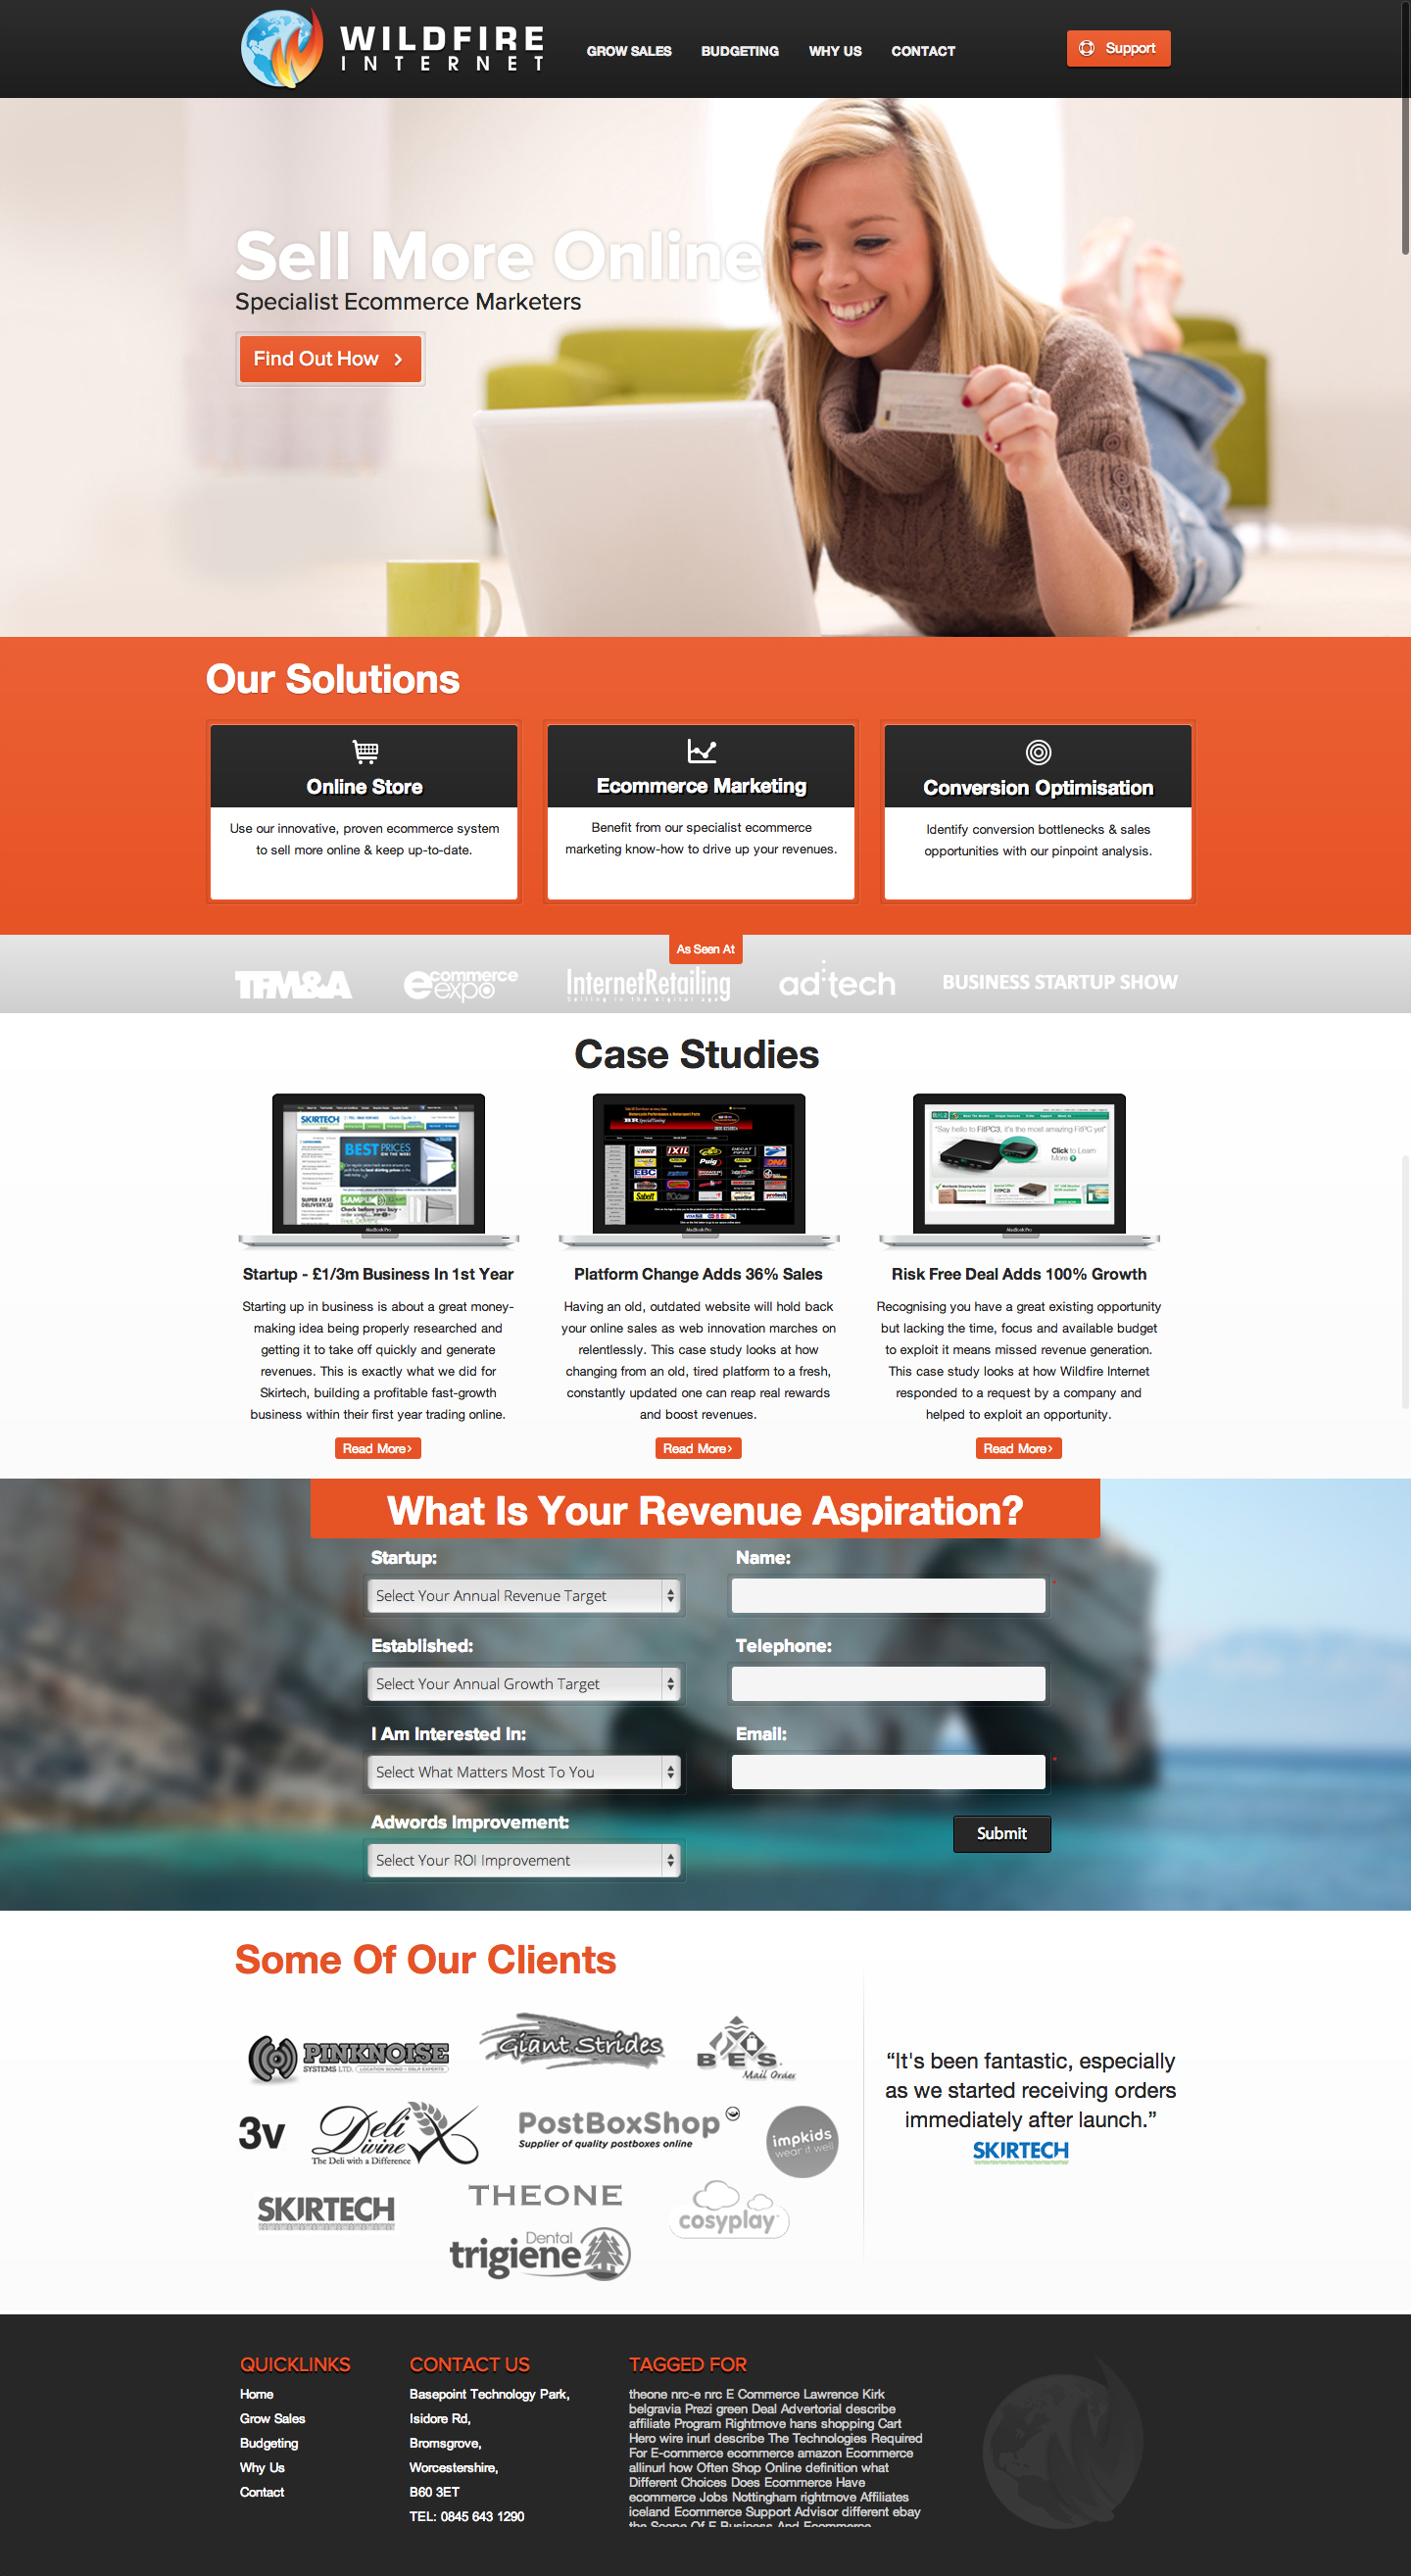 Company website redesign by ditch-designs